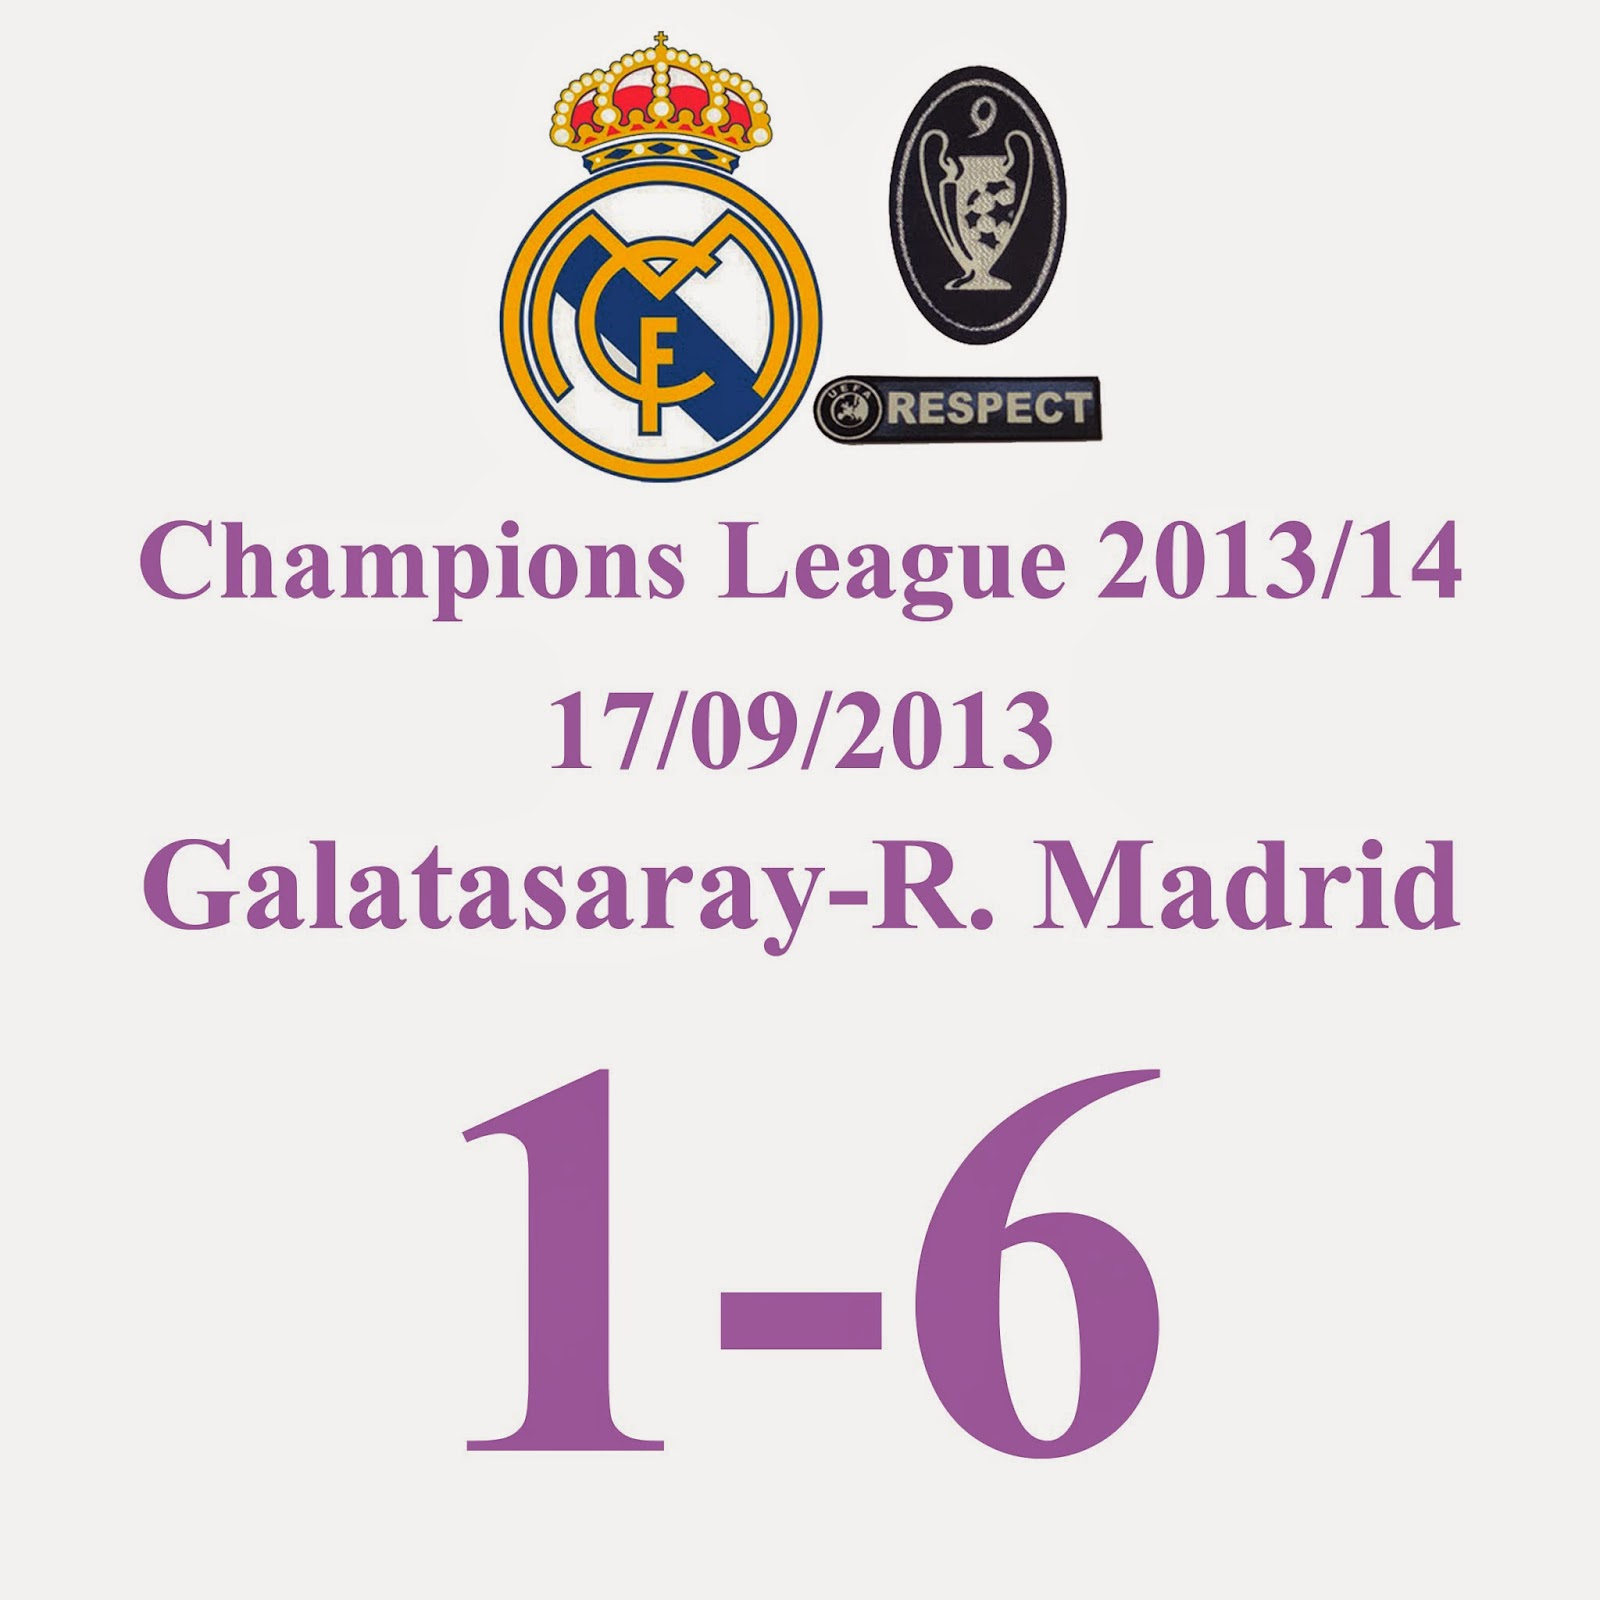 GALATASARAY 1 - REAL MADRID 6 (17/09/2013) - Champions League 13/14 (HAT TRICK DE C. RONALDO.)